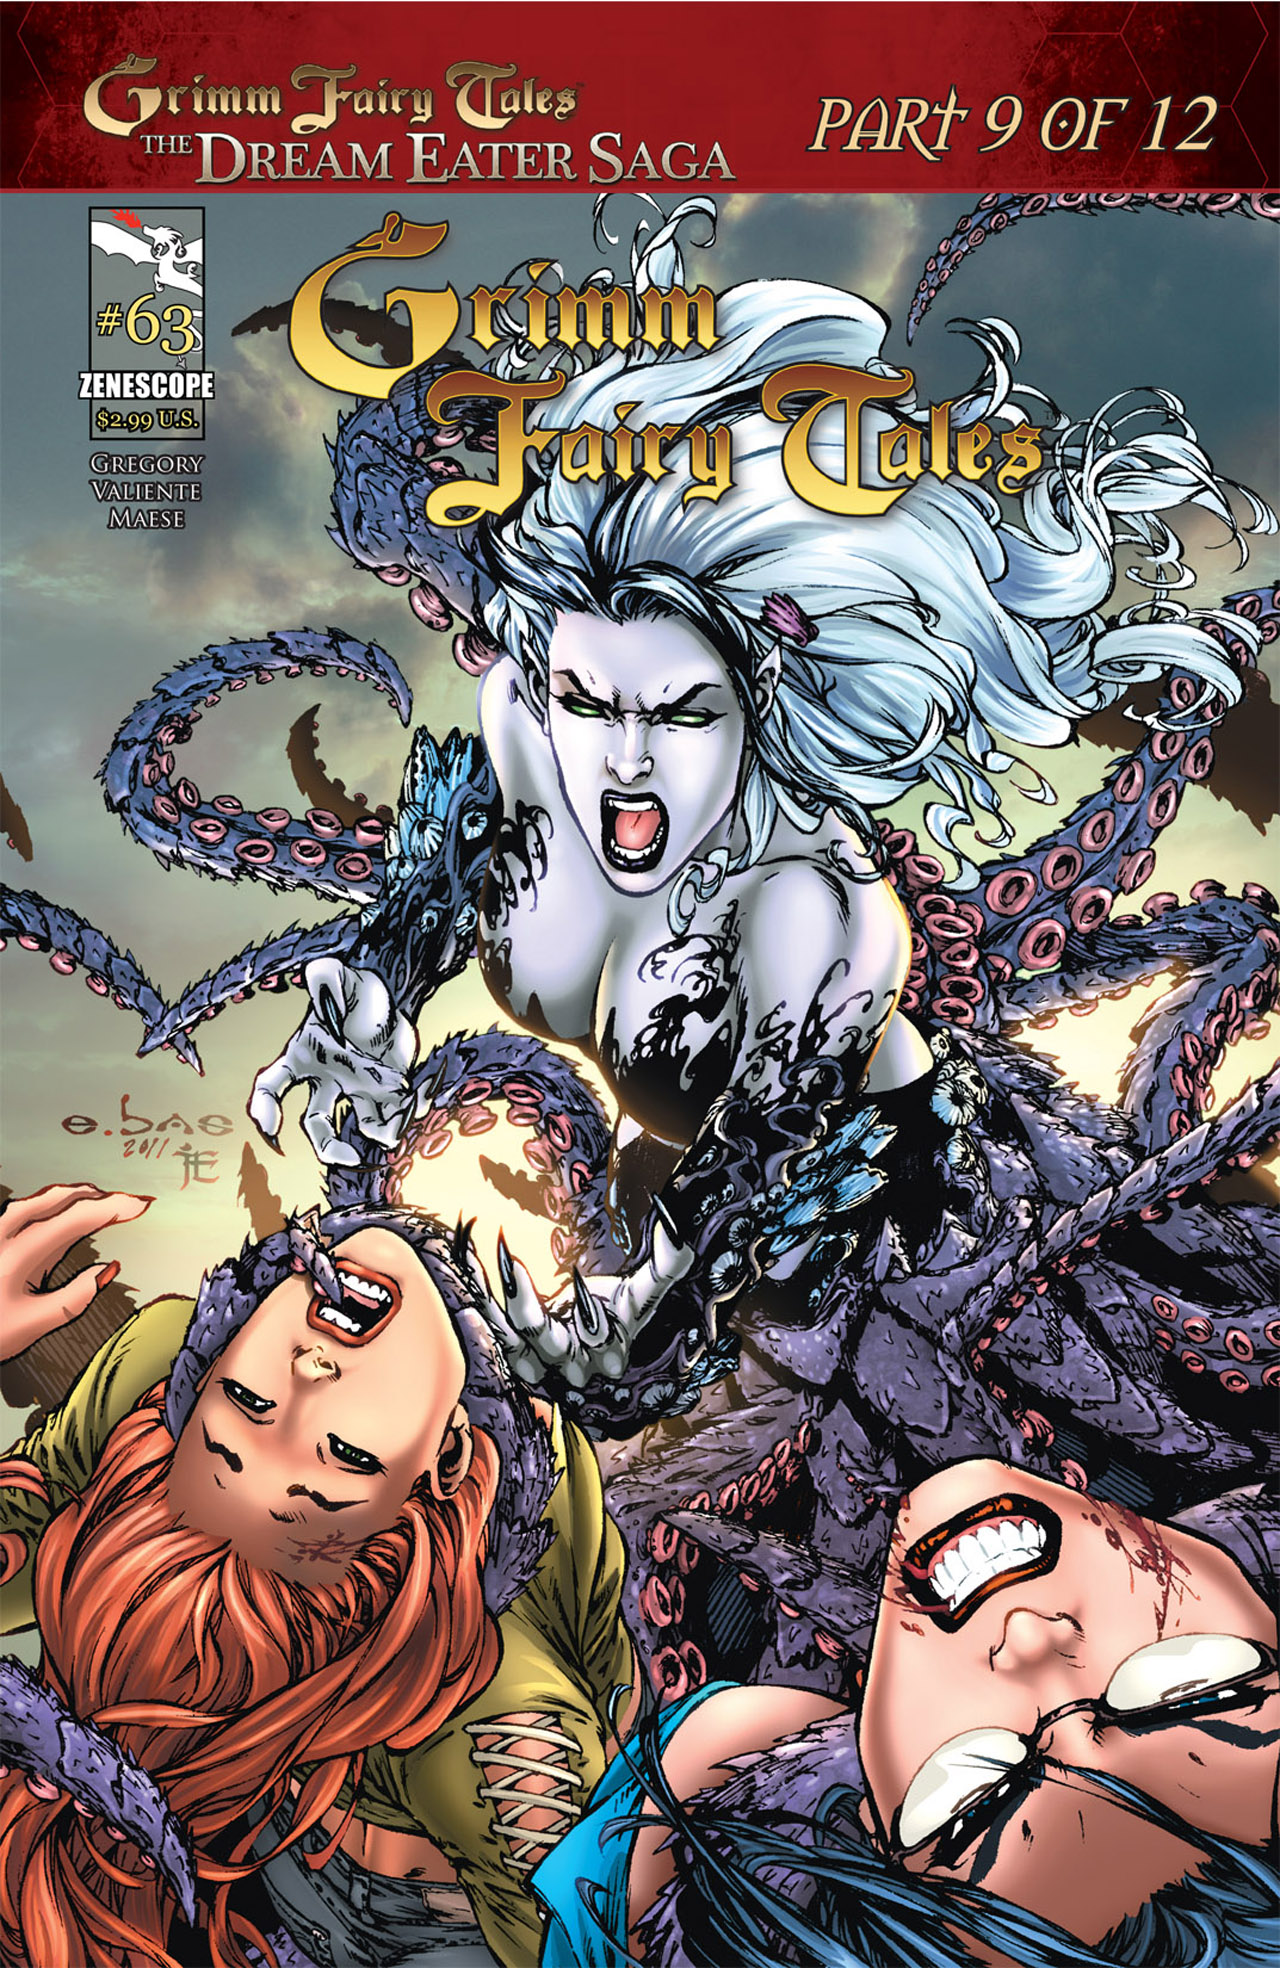 Grimm Fairy Tales (2005) Issue #63 #66 - English 1